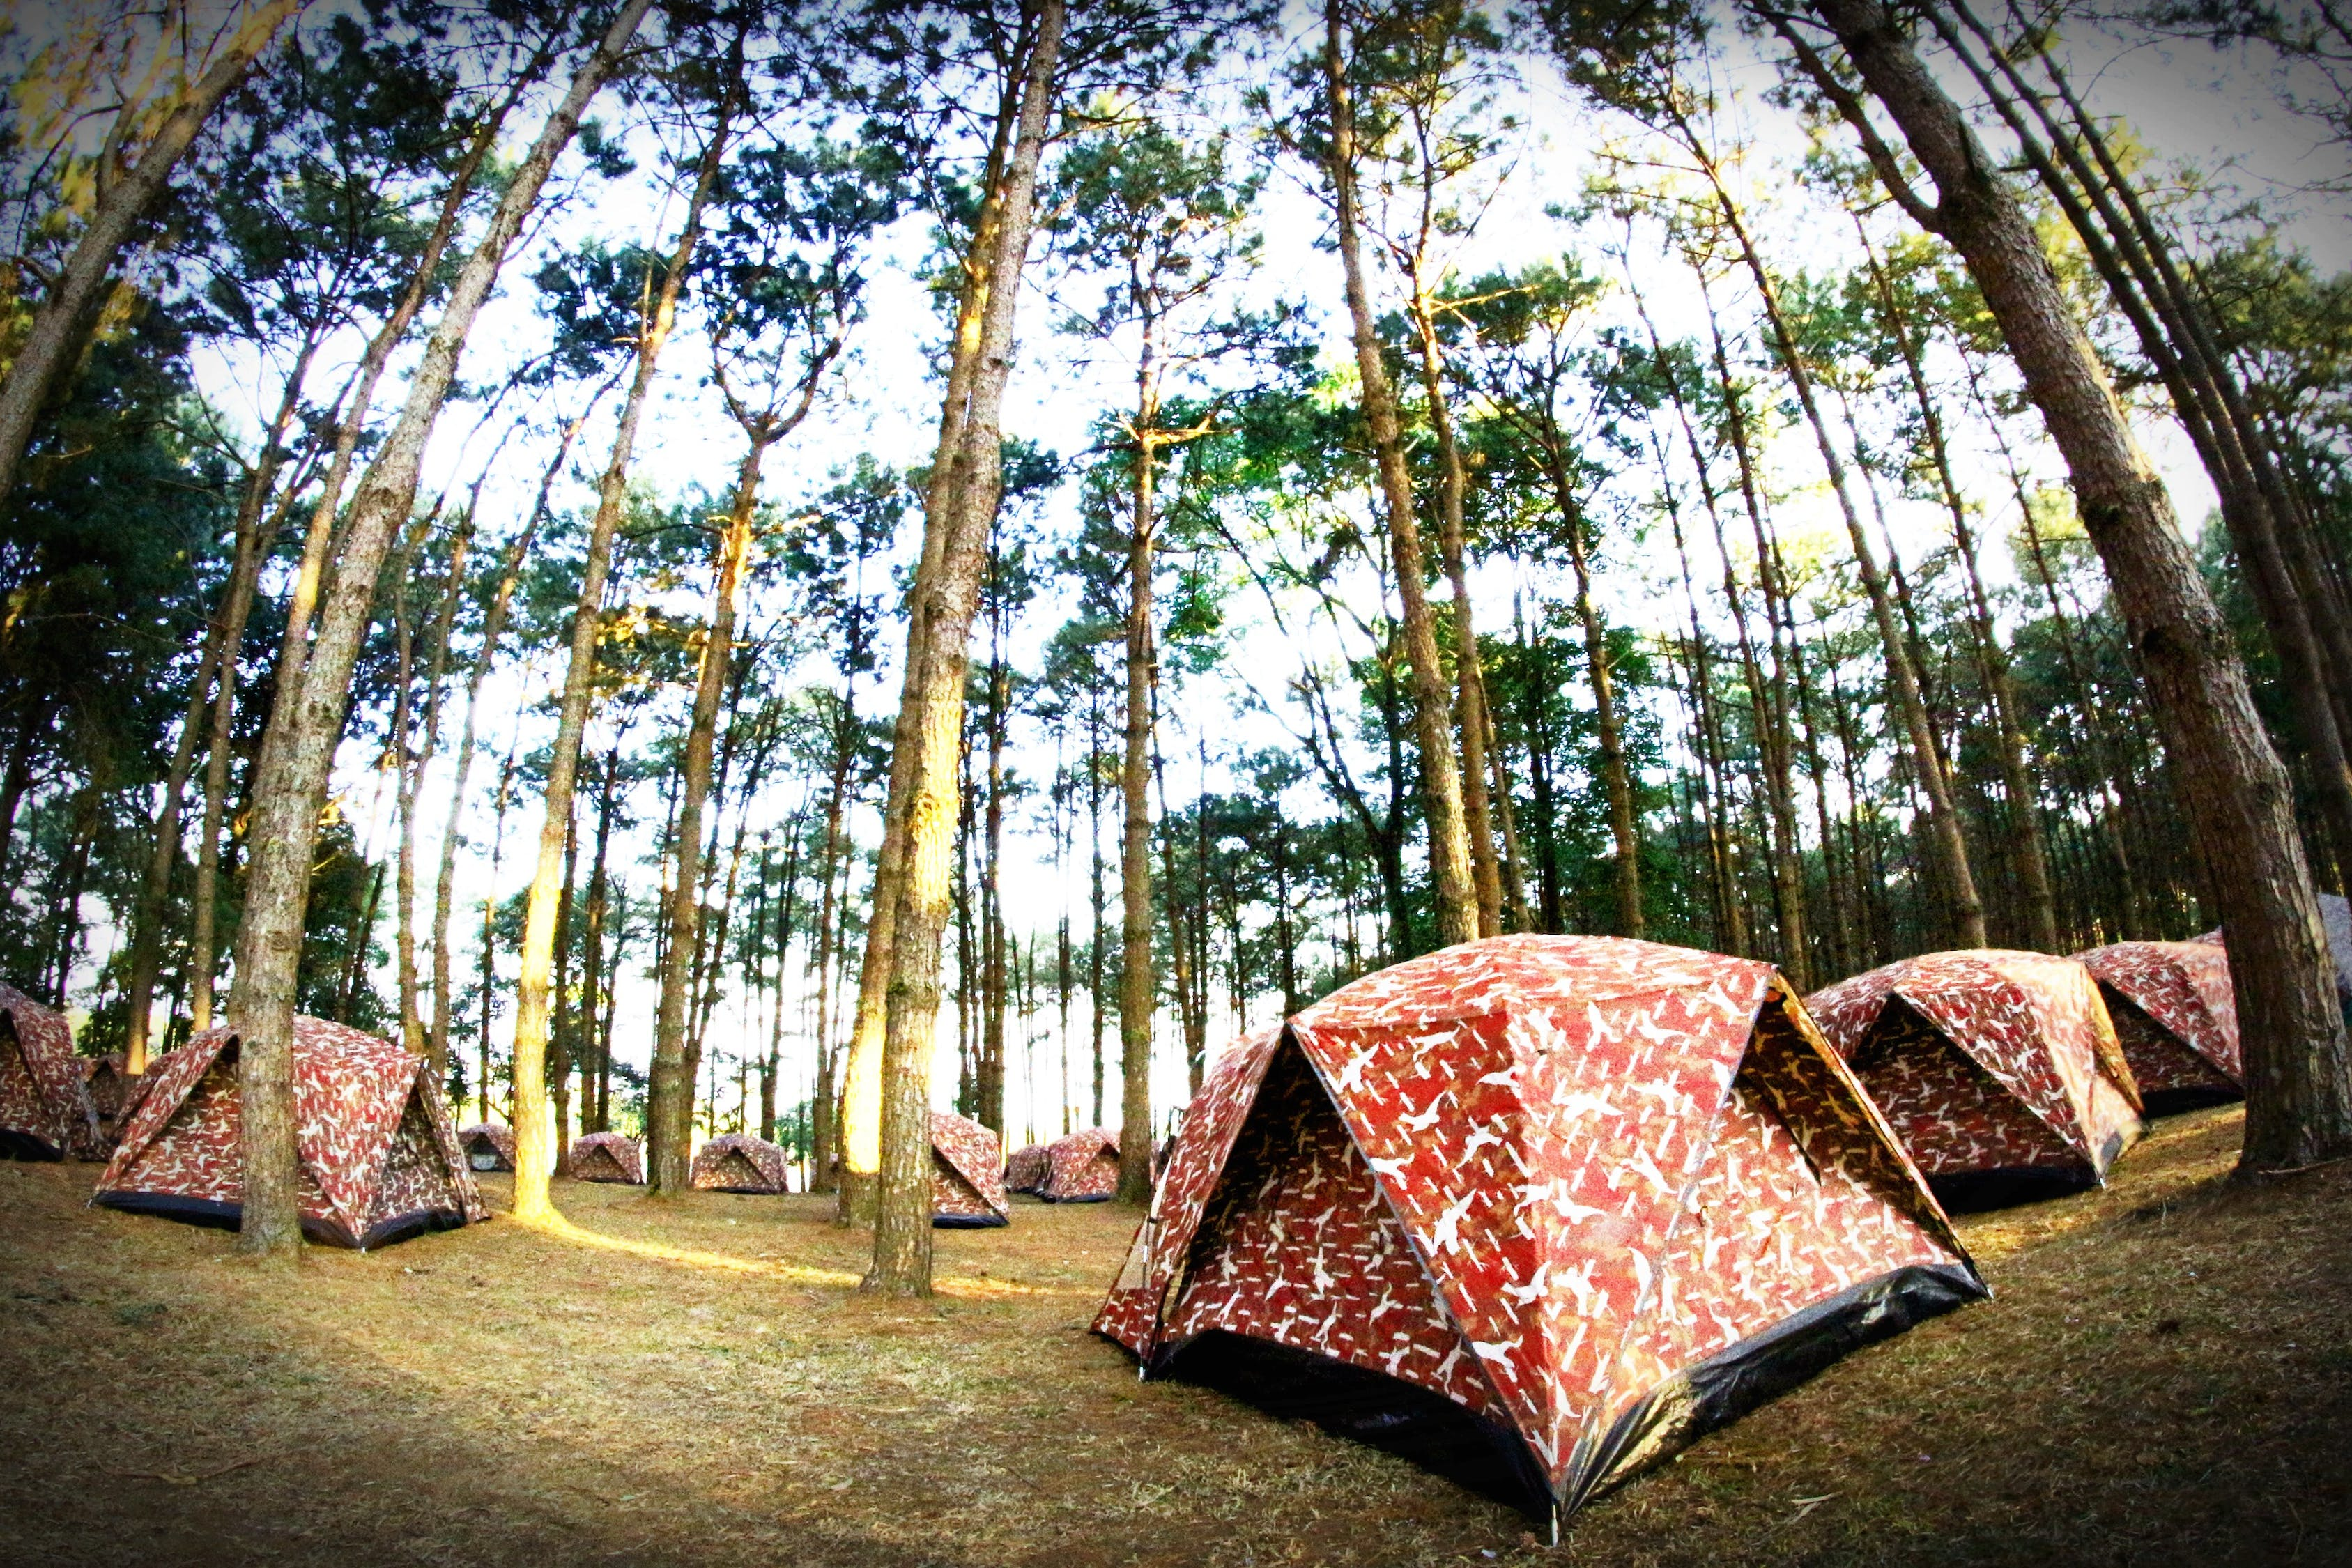 Camping tents placed beside the green leaf trees